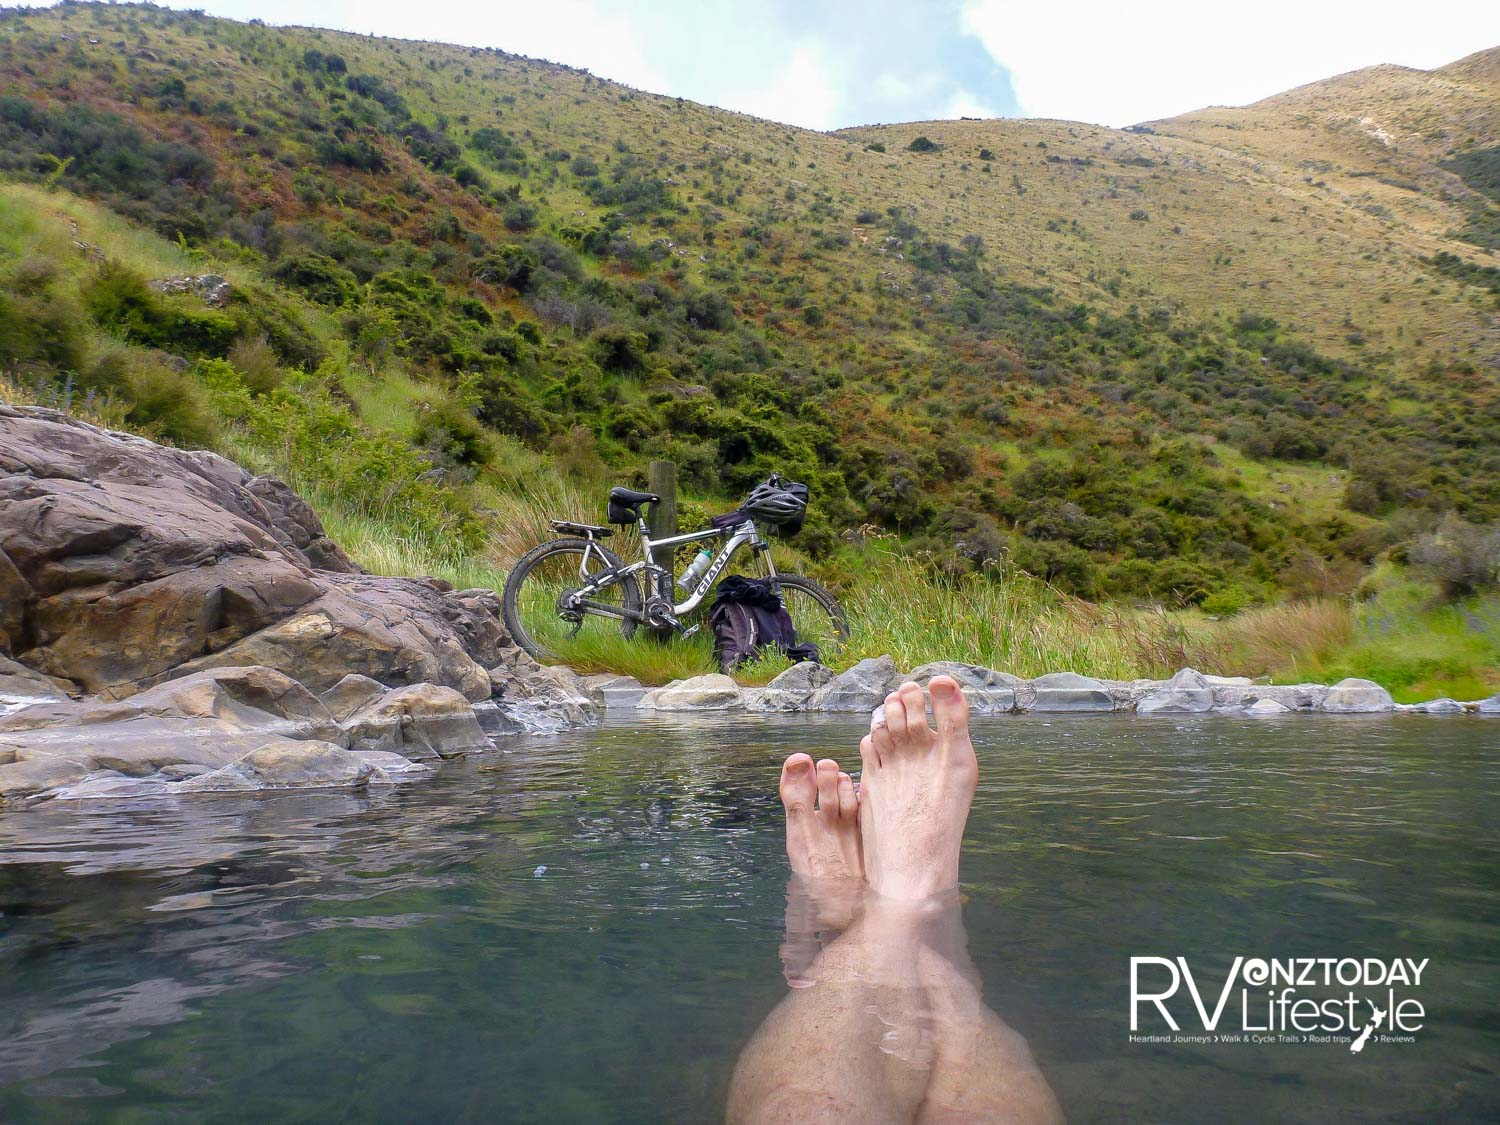 Cow Stream hot spring, perfect soak near the end of the ride